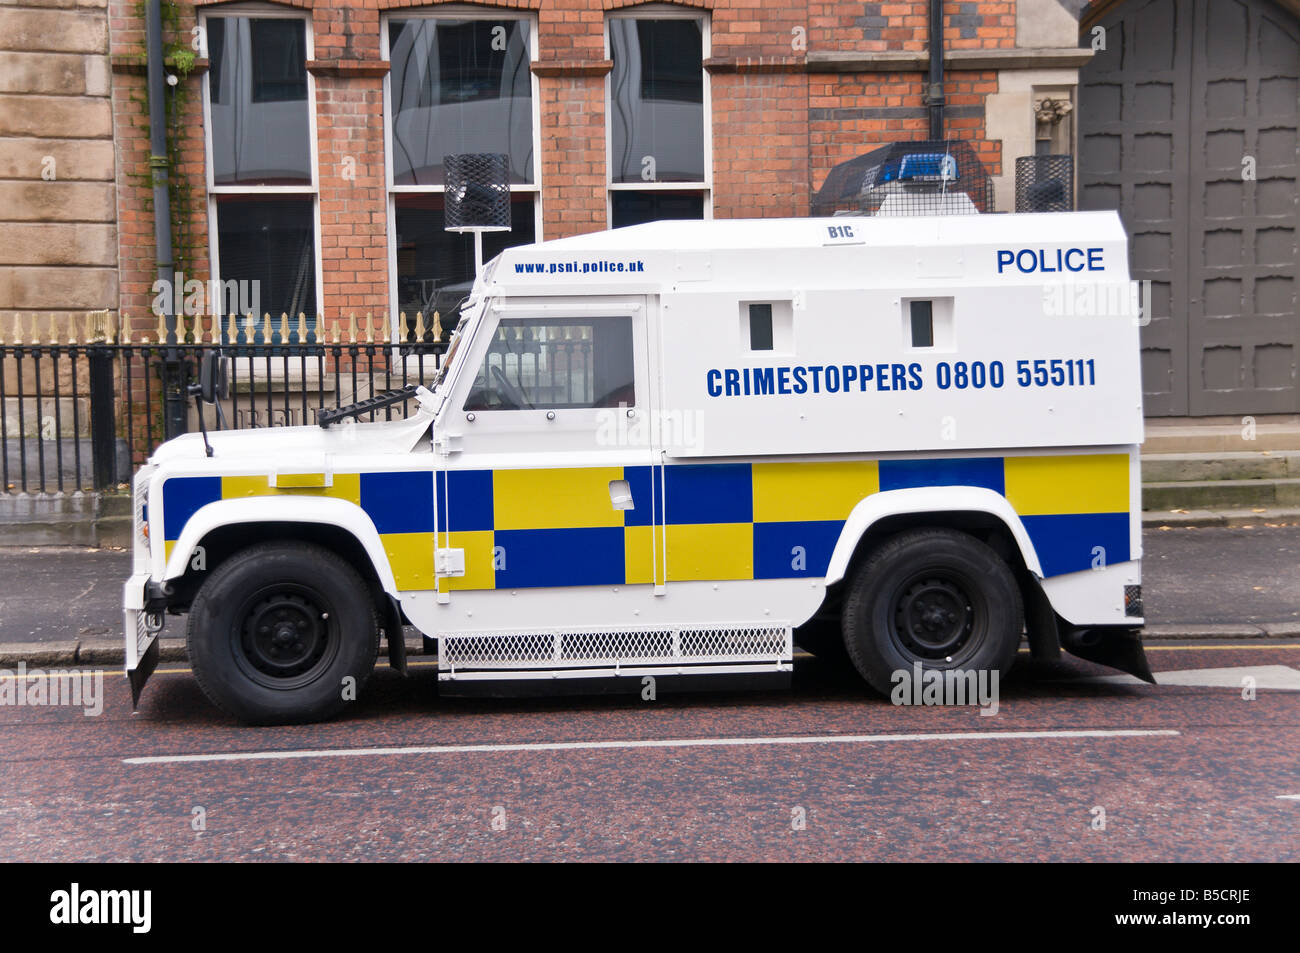 Police Service of Northern Ireland (PSNI) Landrover with white livery and Crimestoppers number. - Stock Image